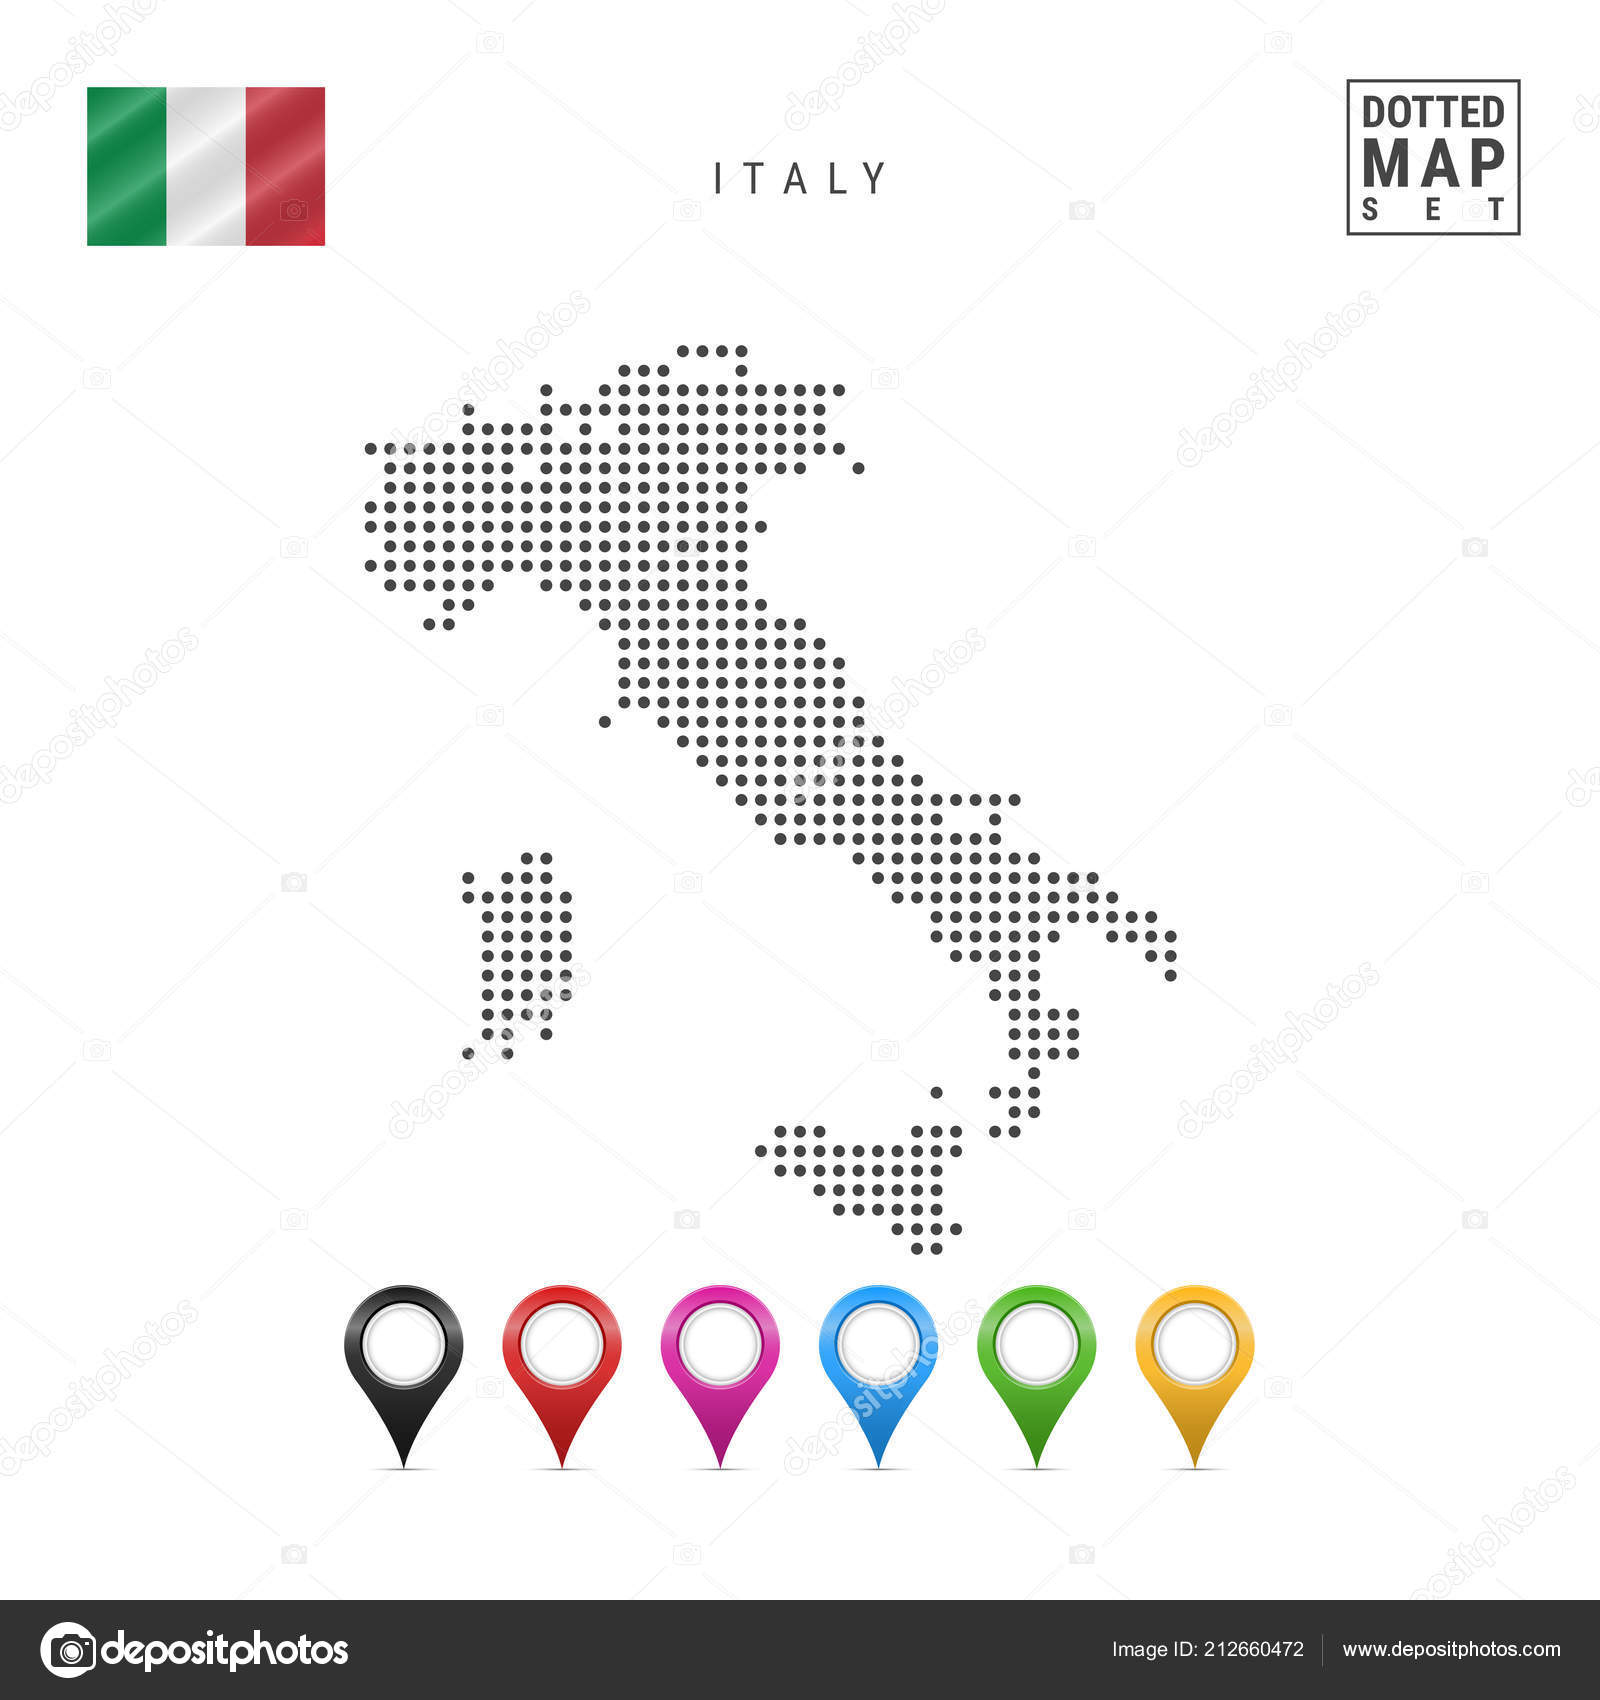 Map Of Italy Simple.Dotted Map Italy Simple Silhouette Italy National Flag Italy Set